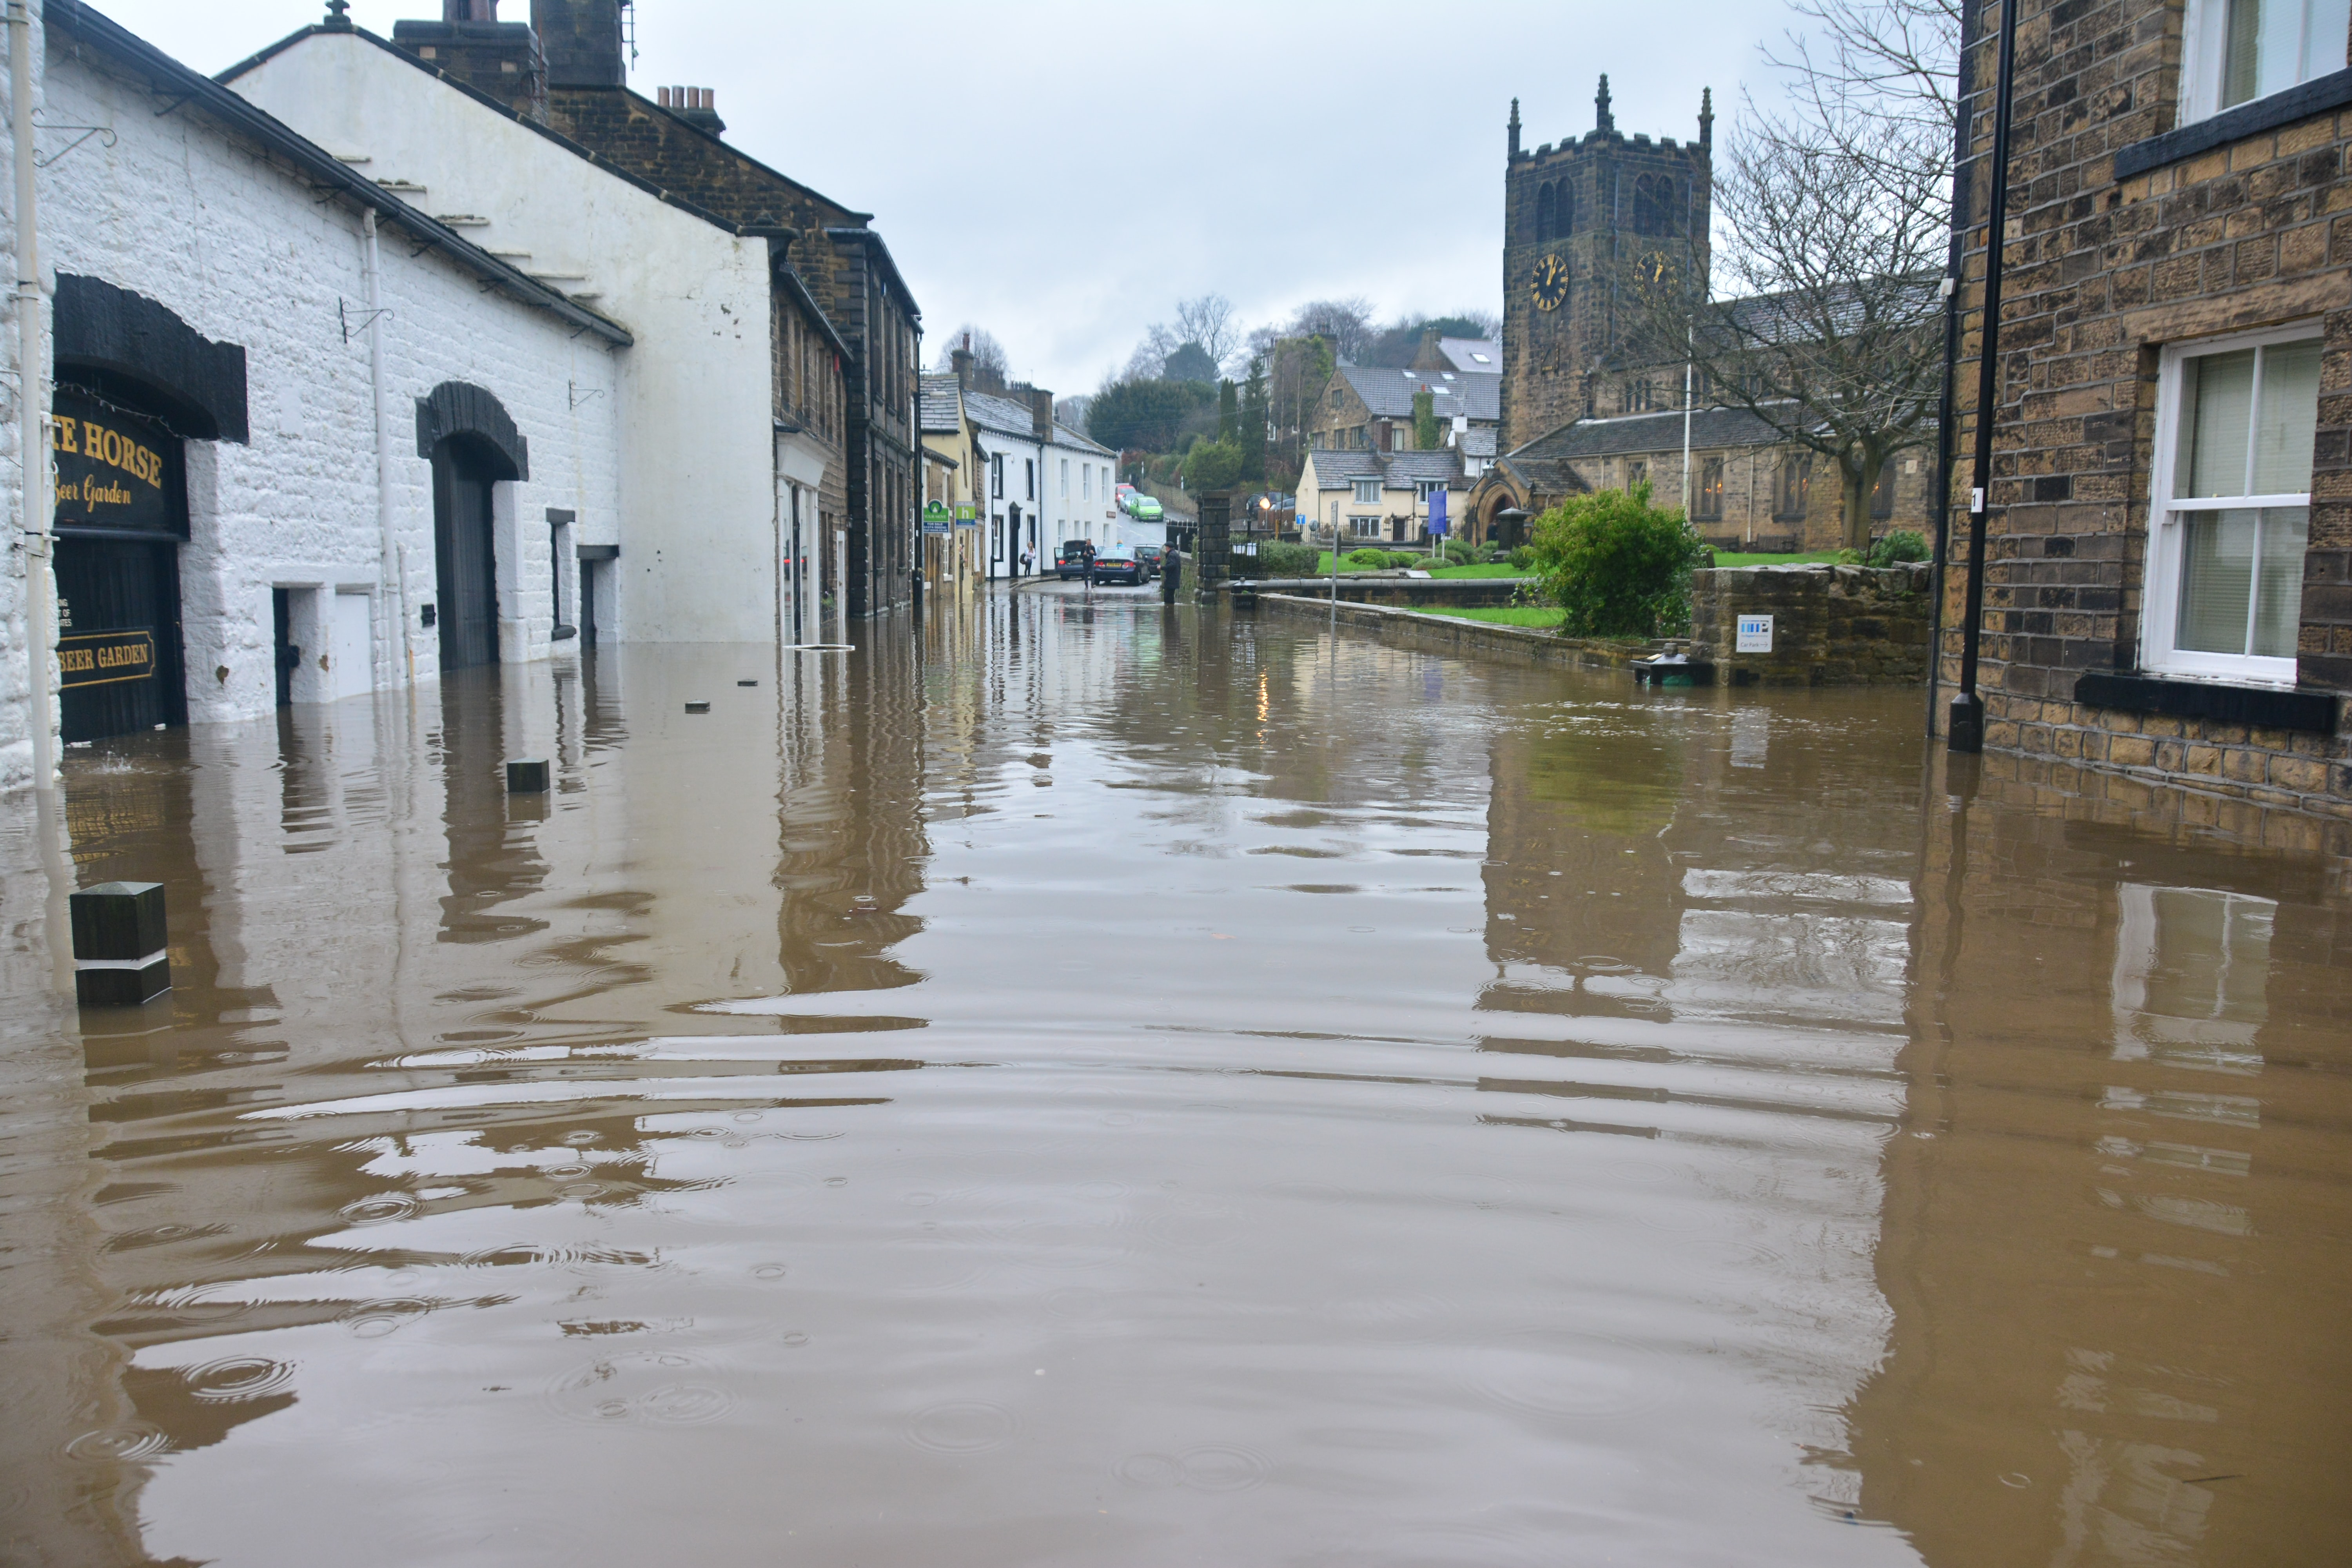 Flooding on a residential street